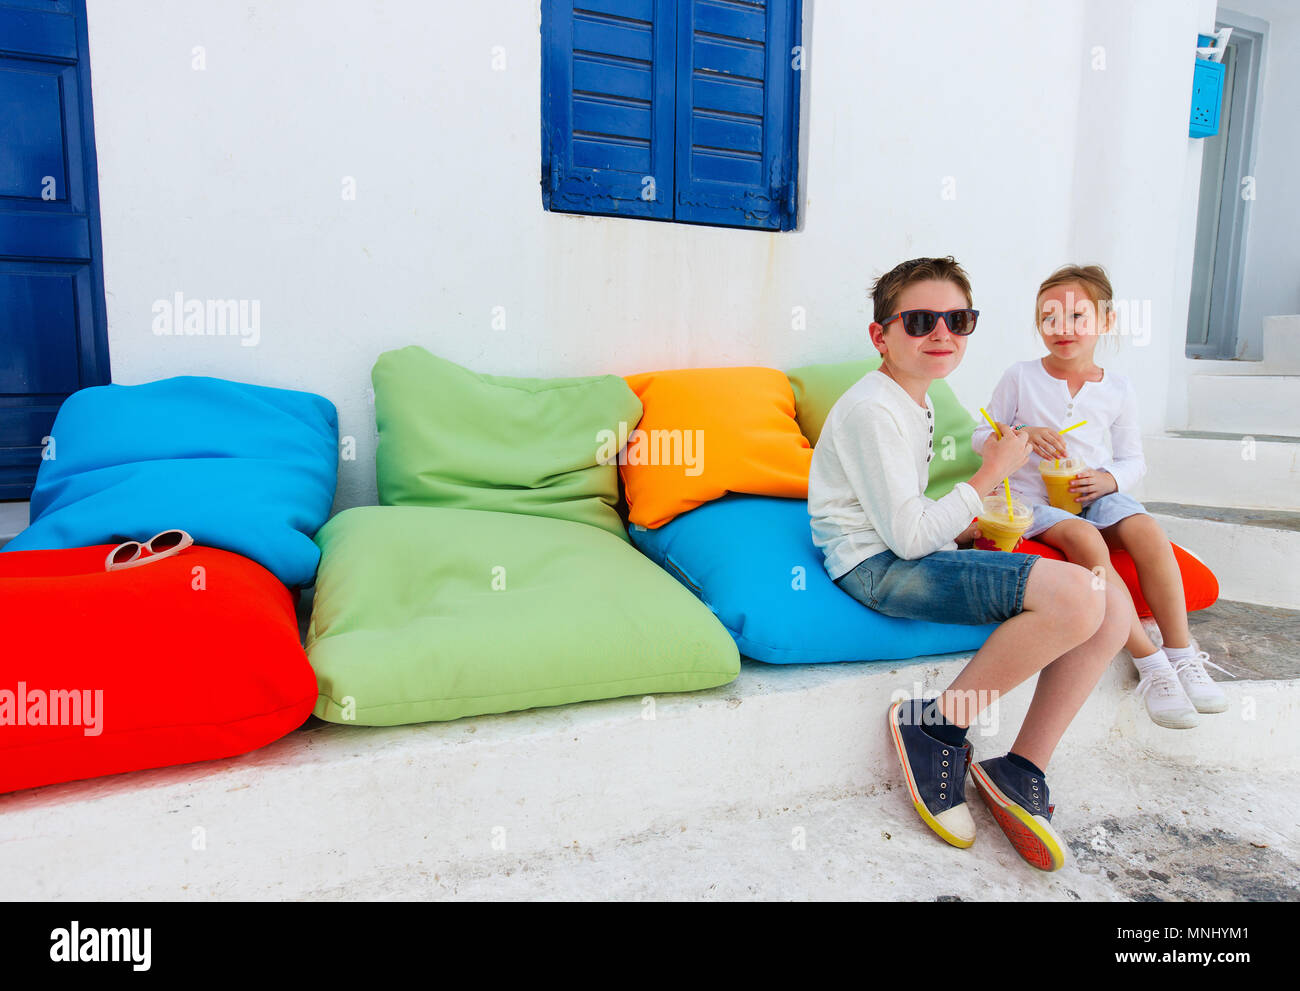 Two cute kids brother and sister drinking fresh smoothies on a colorful pillows at outdoor cafe on summer day - Stock Image